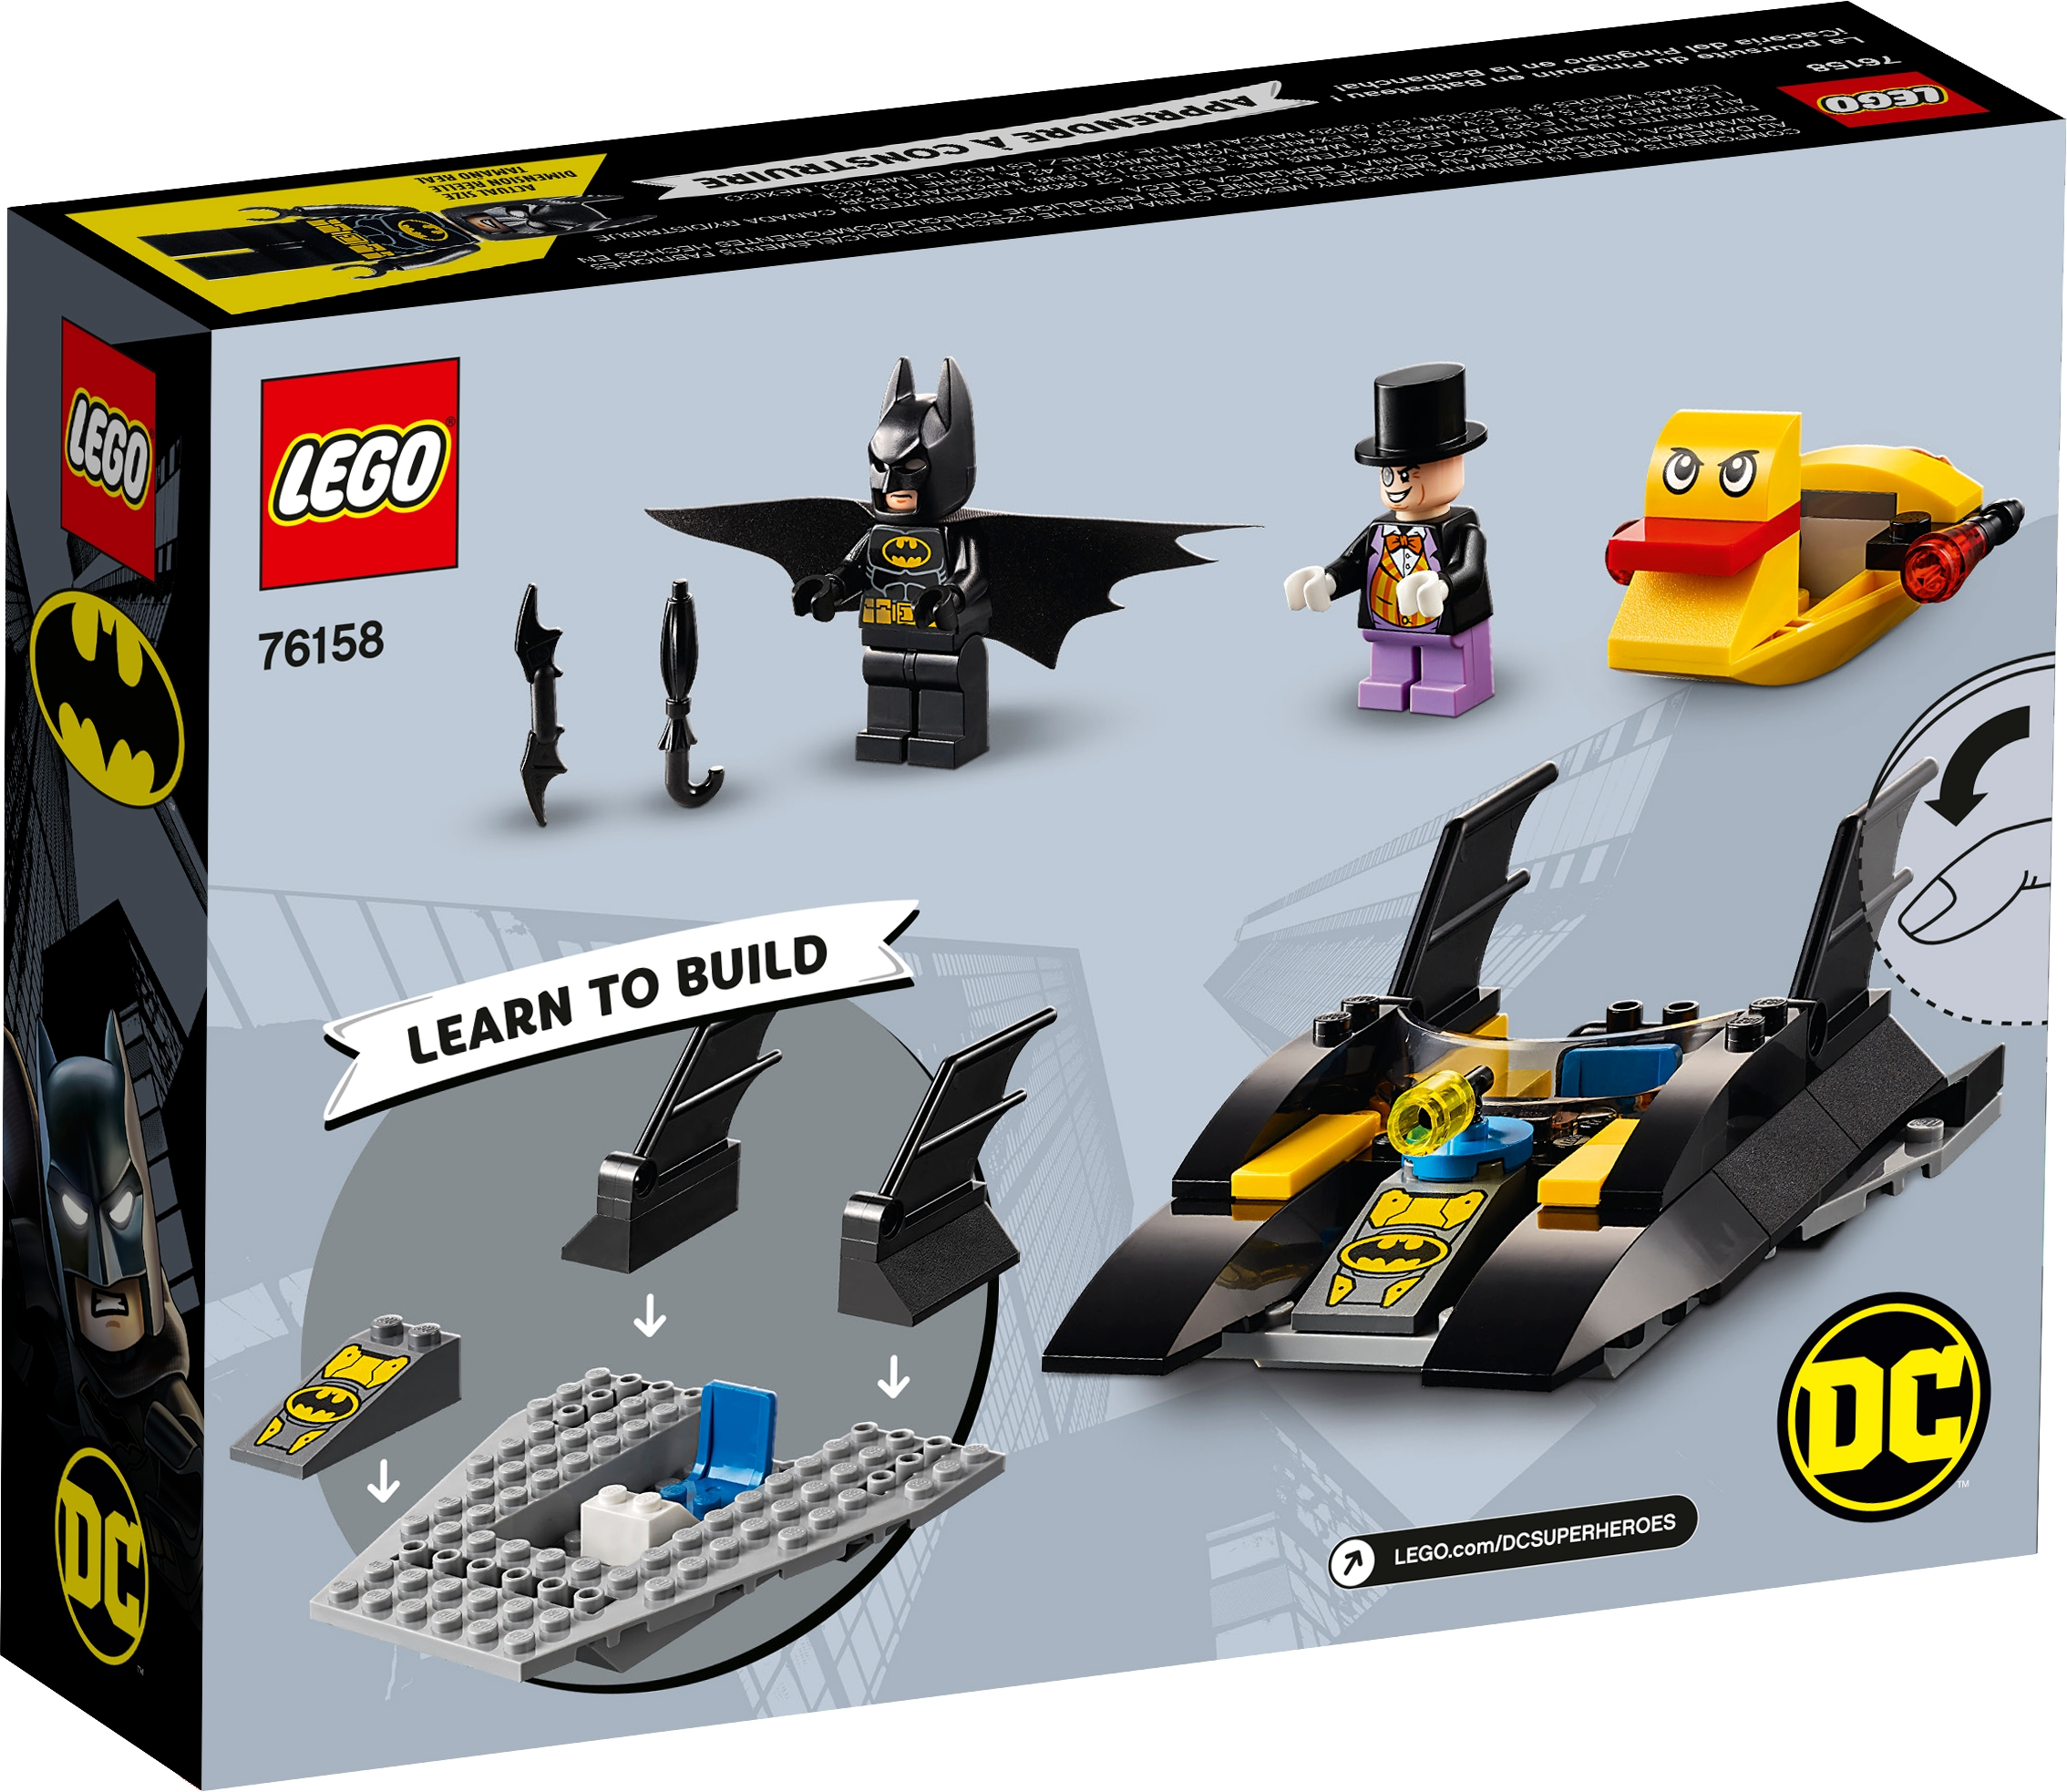 Bagged LEGO Super Heroes The Penguin Minifigure from 76158